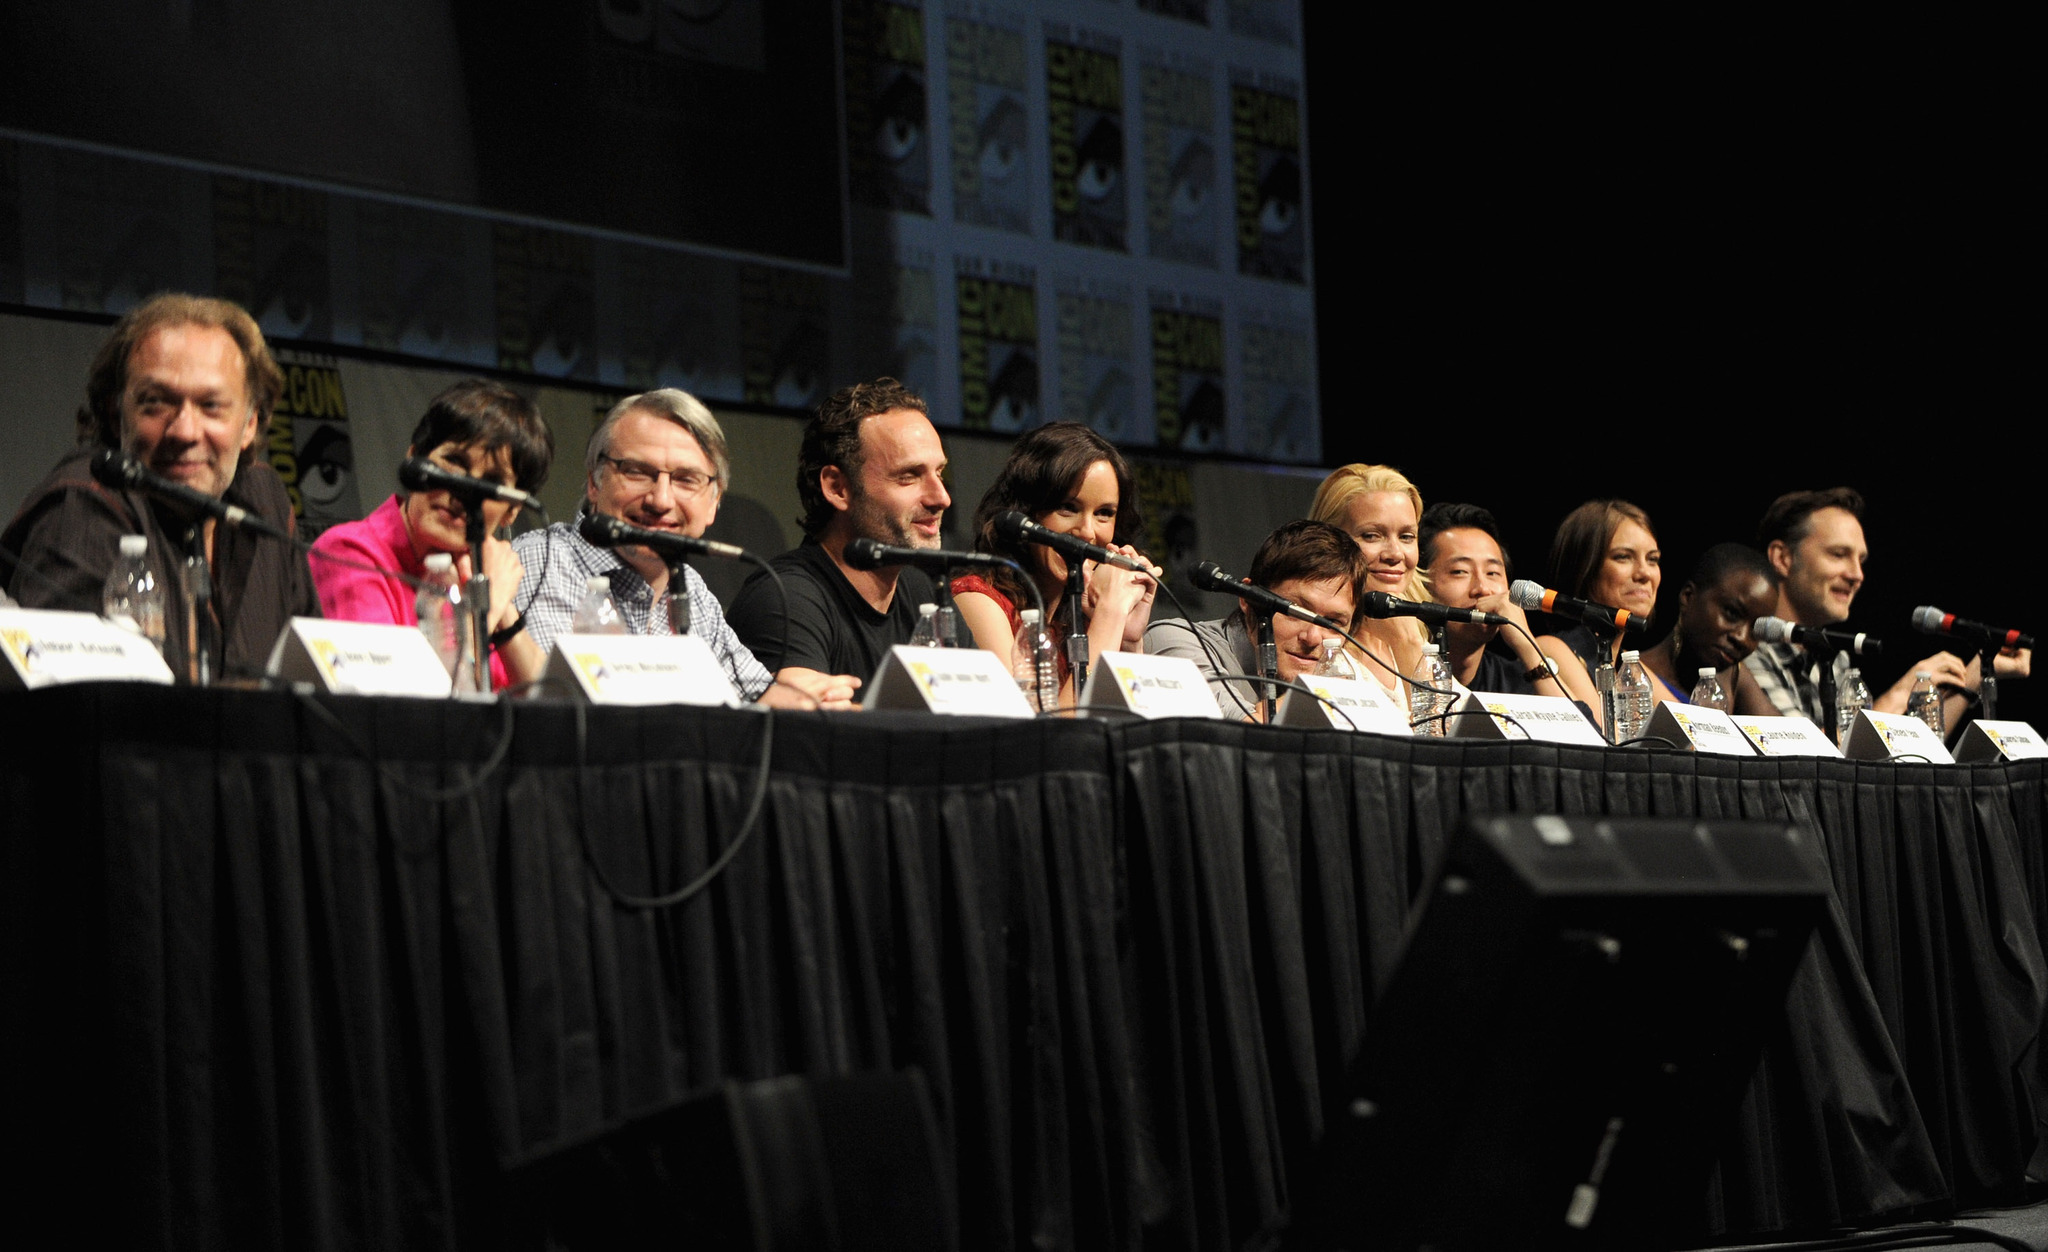 Gale Anne Hurd, Norman Reedus, Laurie Holden, Andrew Lincoln, David Morrissey, Greg Nicotero, Sarah Wayne Callies, Glen Mazzara, Lauren Cohan, Danai Gurira, and Steven Yeun at an event for The Walking Dead (2010)